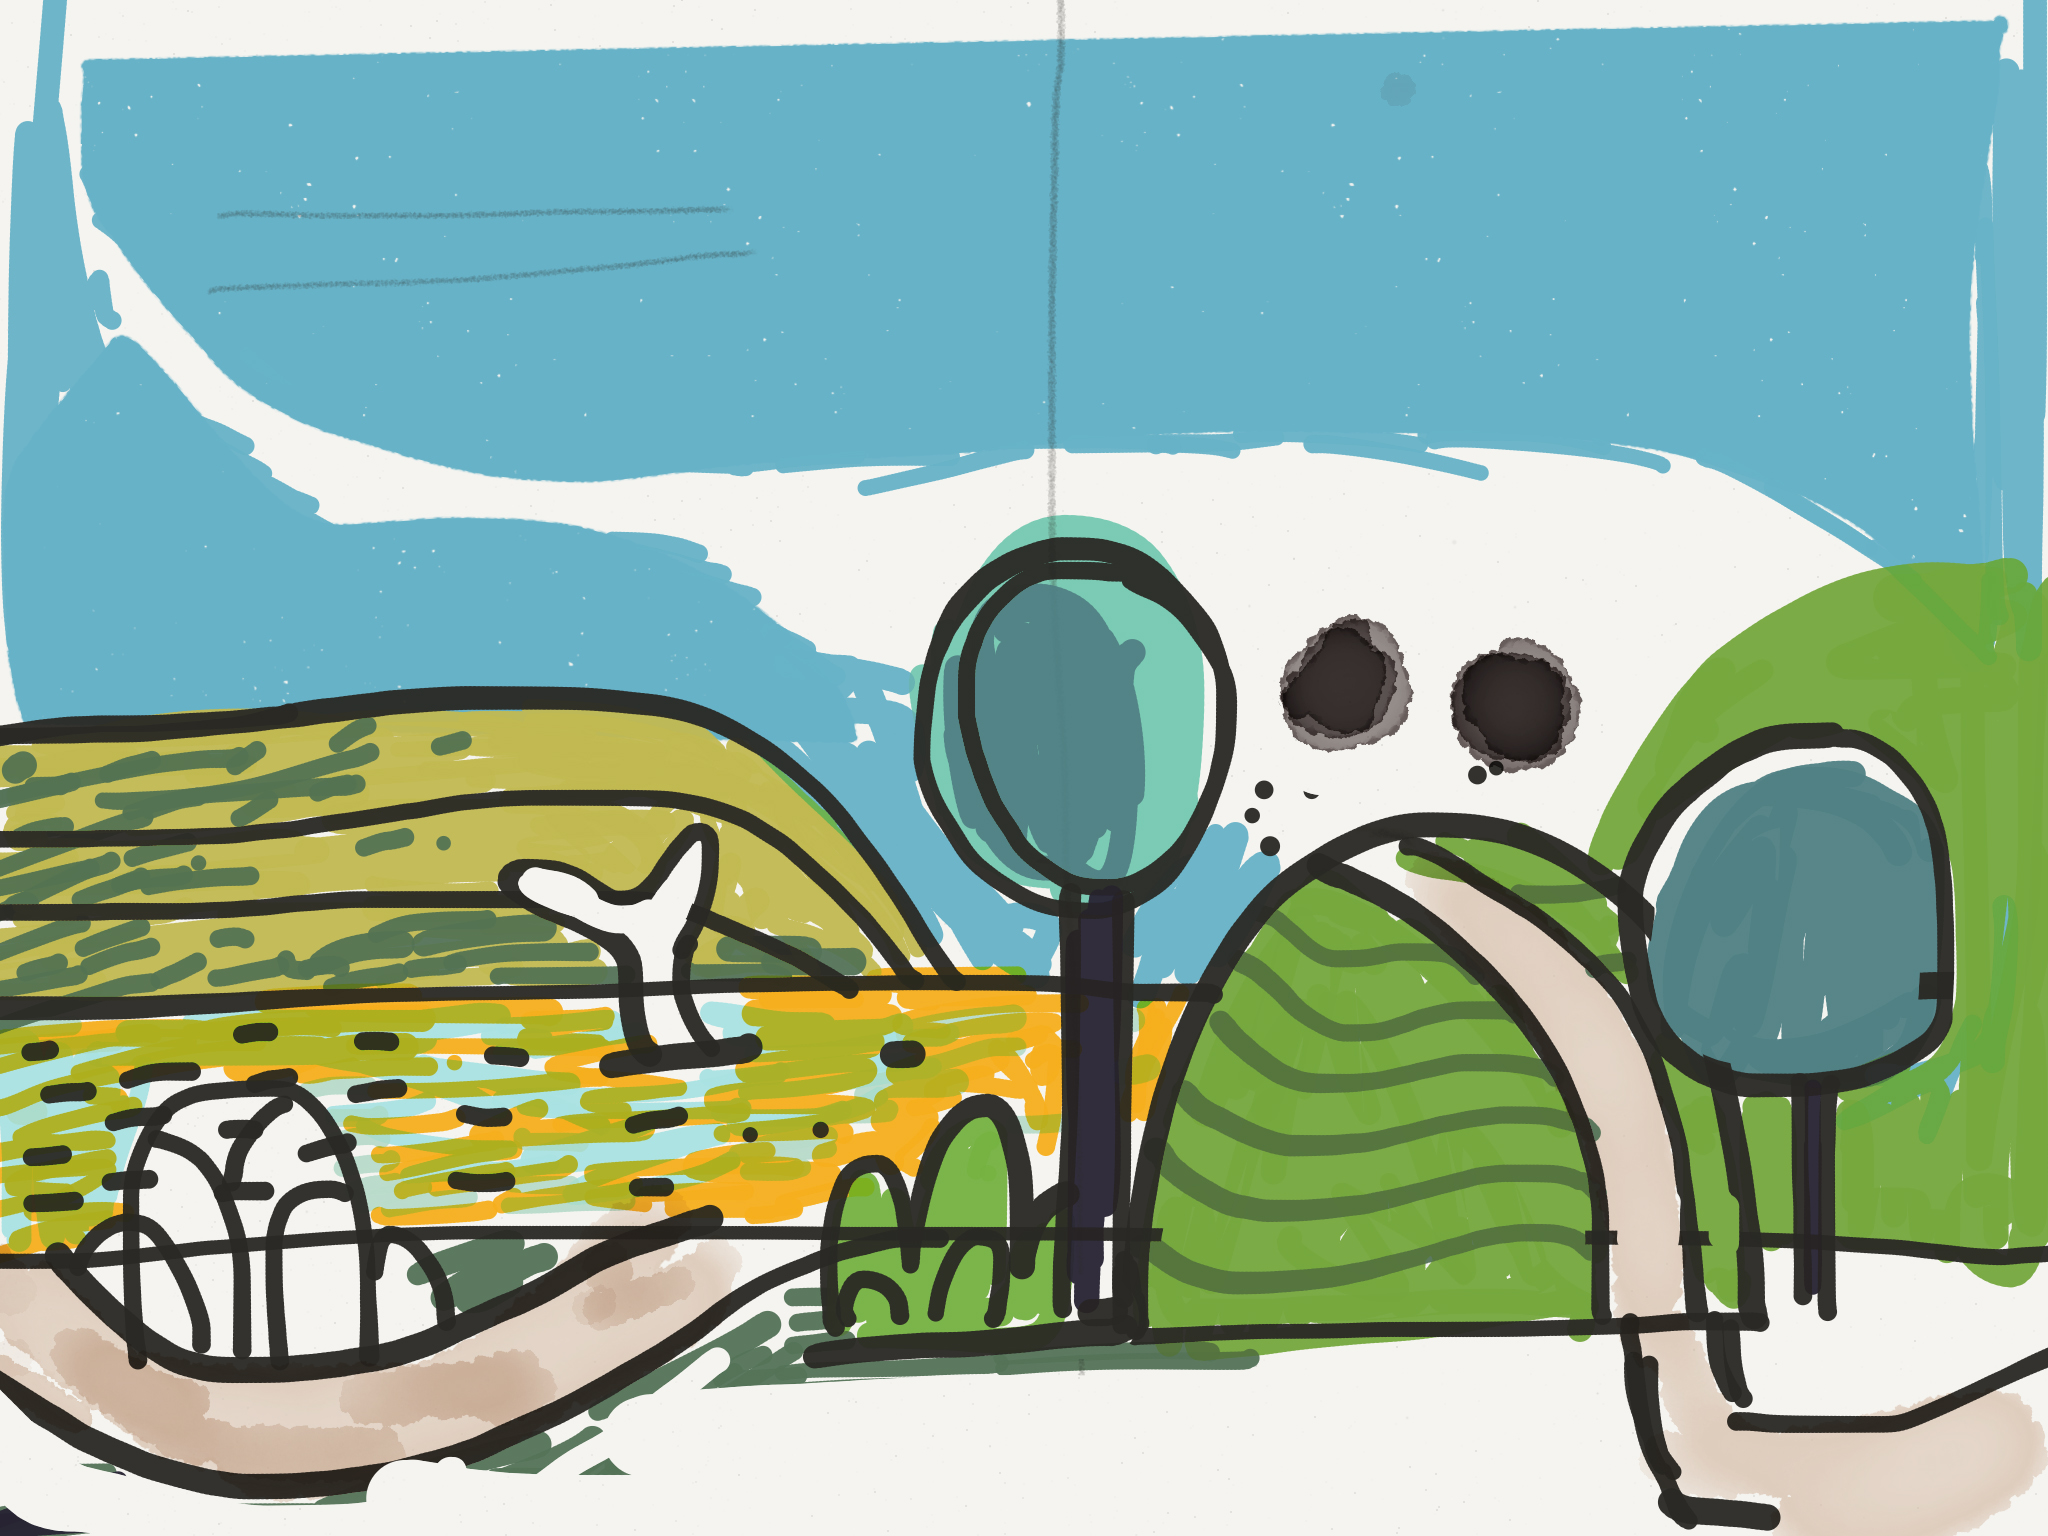 Background sketch. Inspired by Super Mario Brothers 2! :)